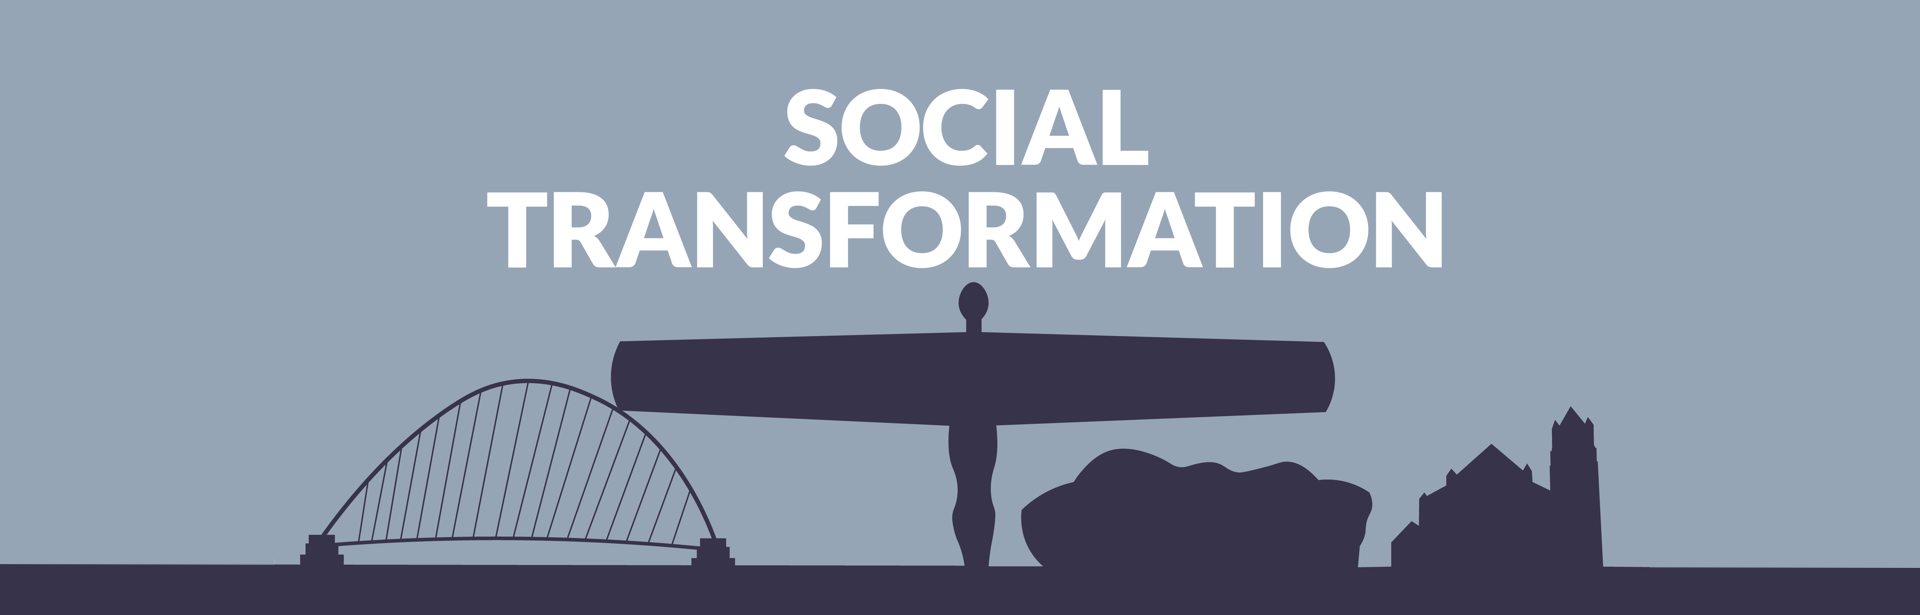 St George's Social Transformation